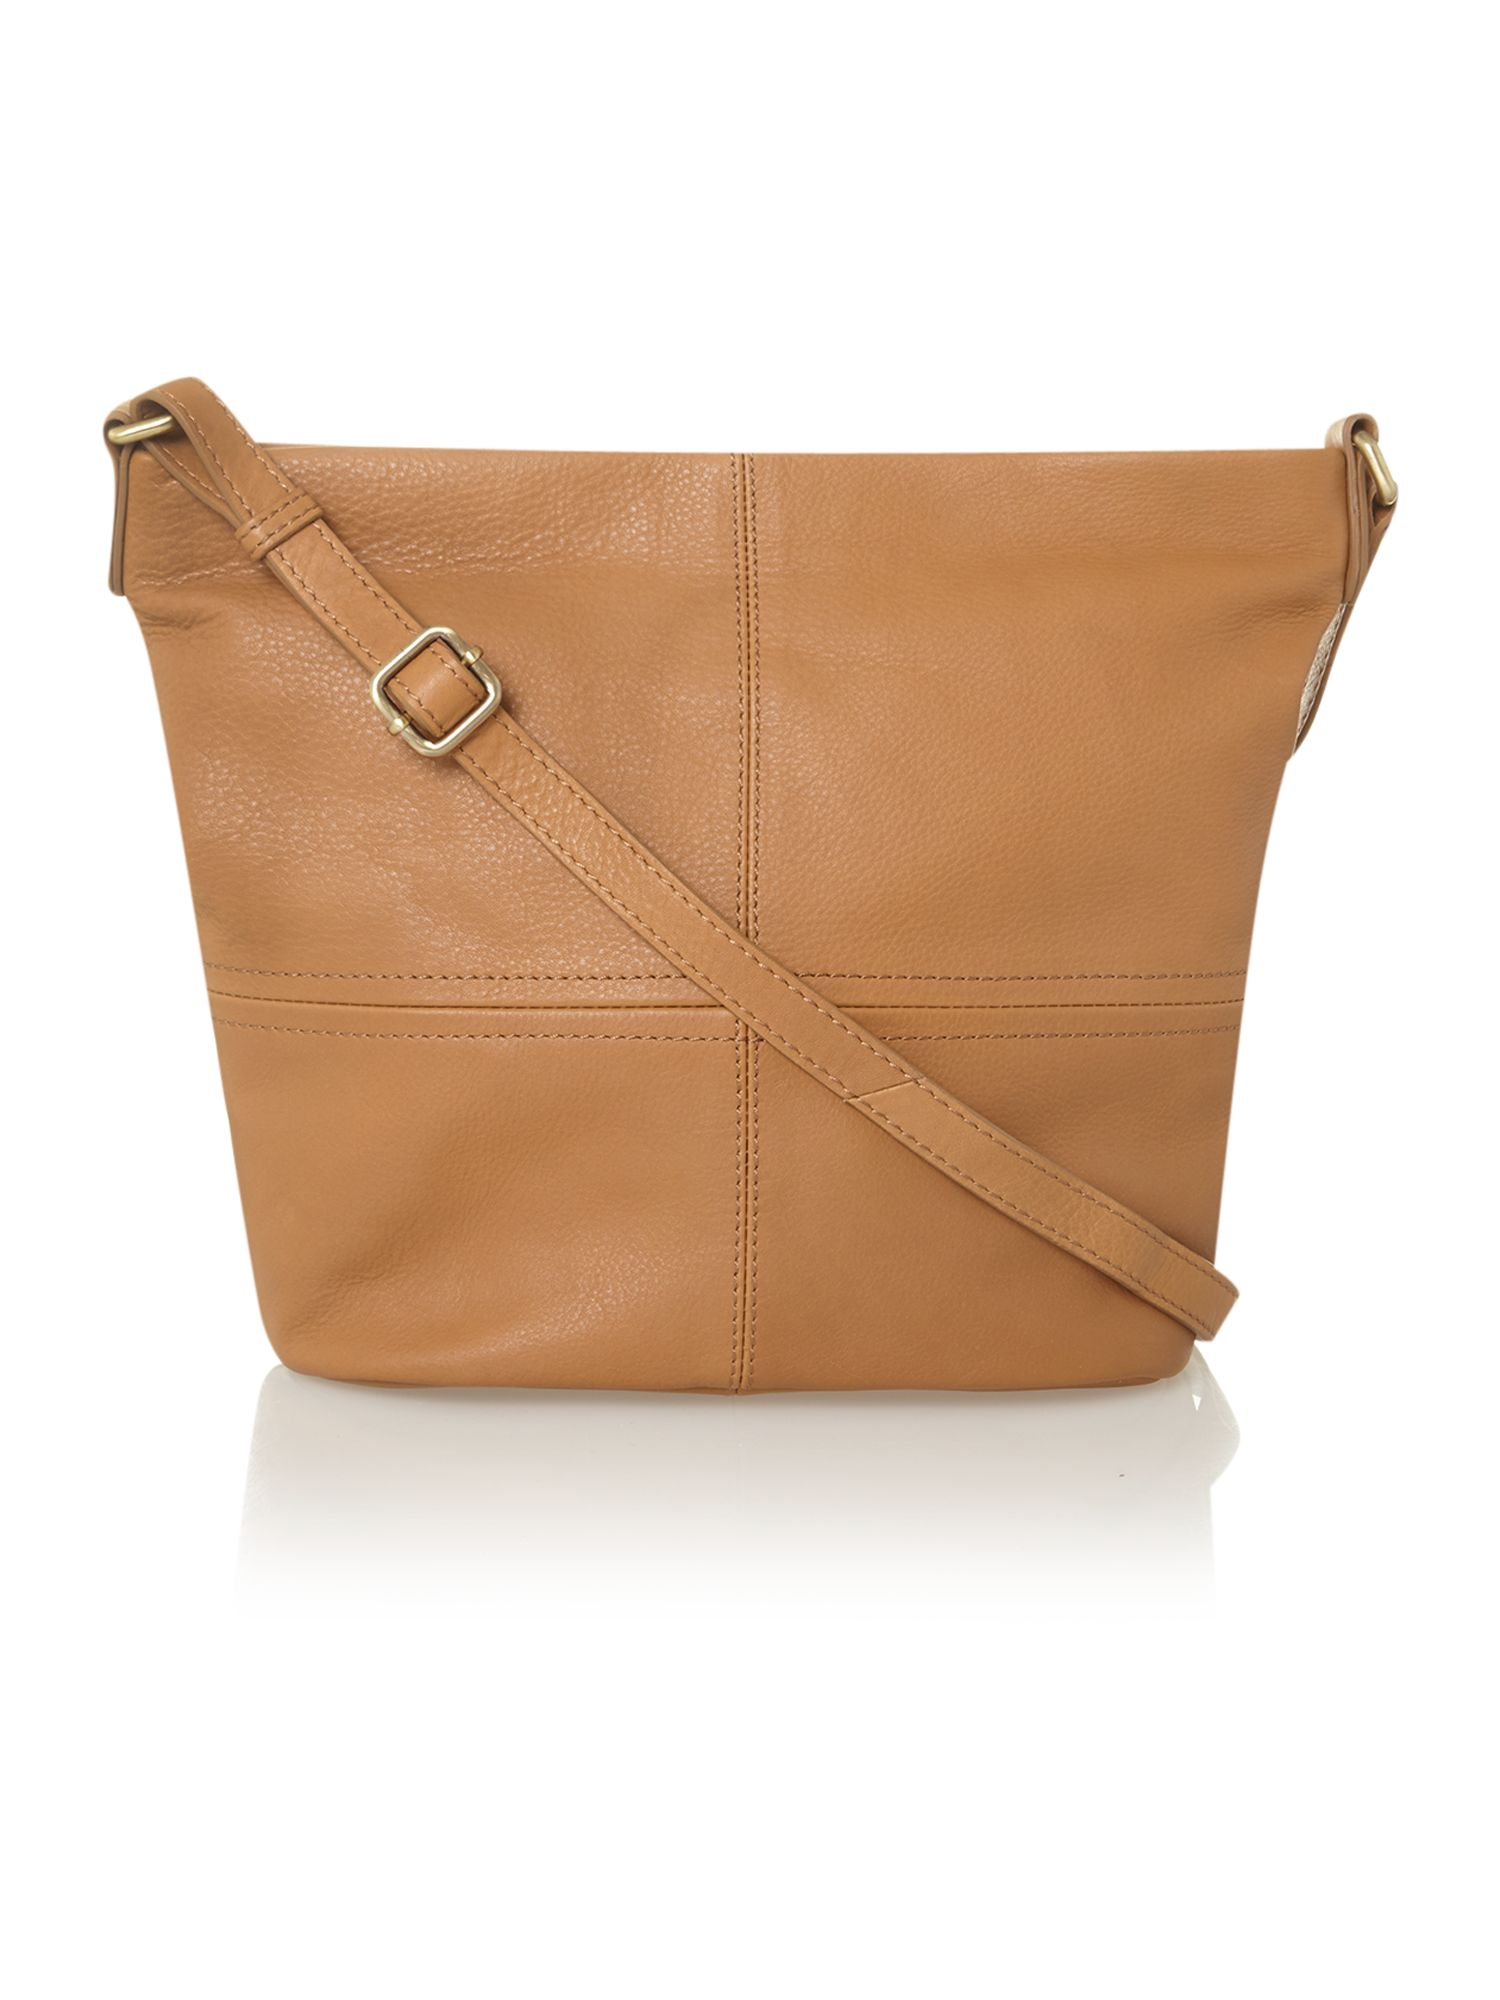 Jessie cross body